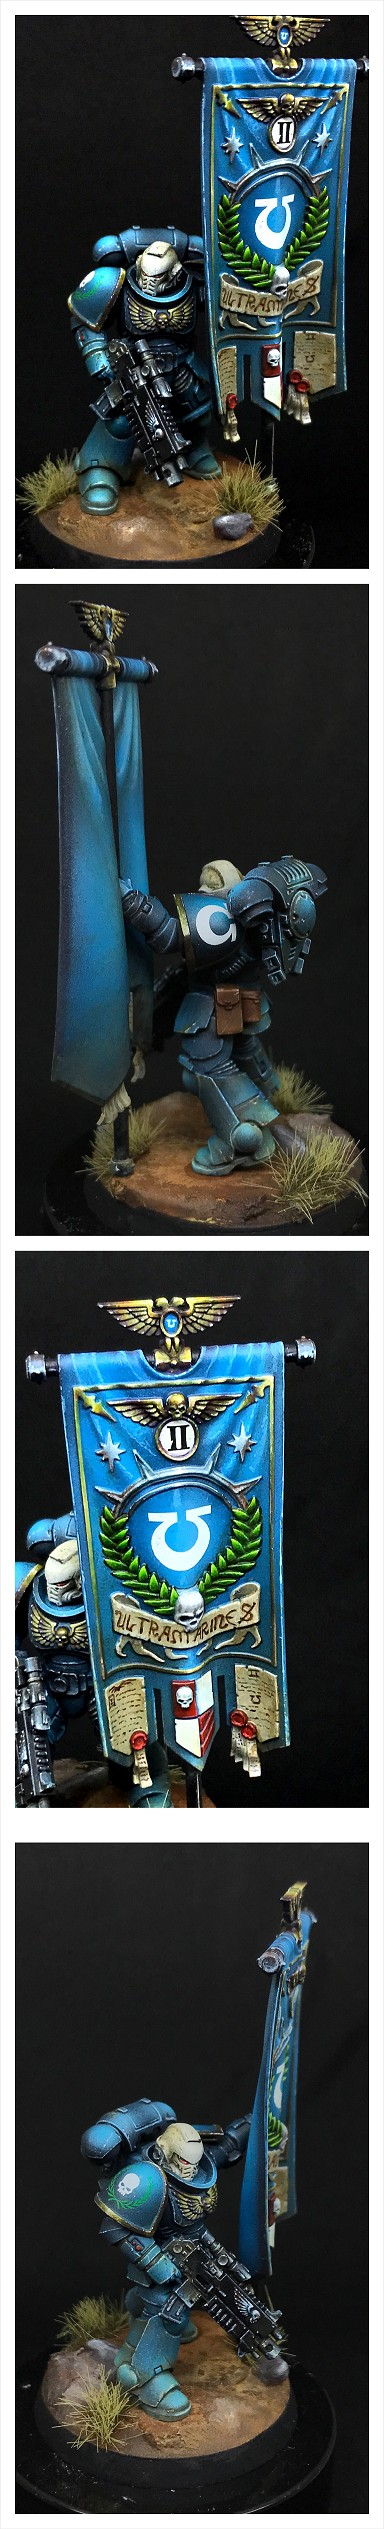 Warhammer 40k Dark Imperium Space Ancient NMM